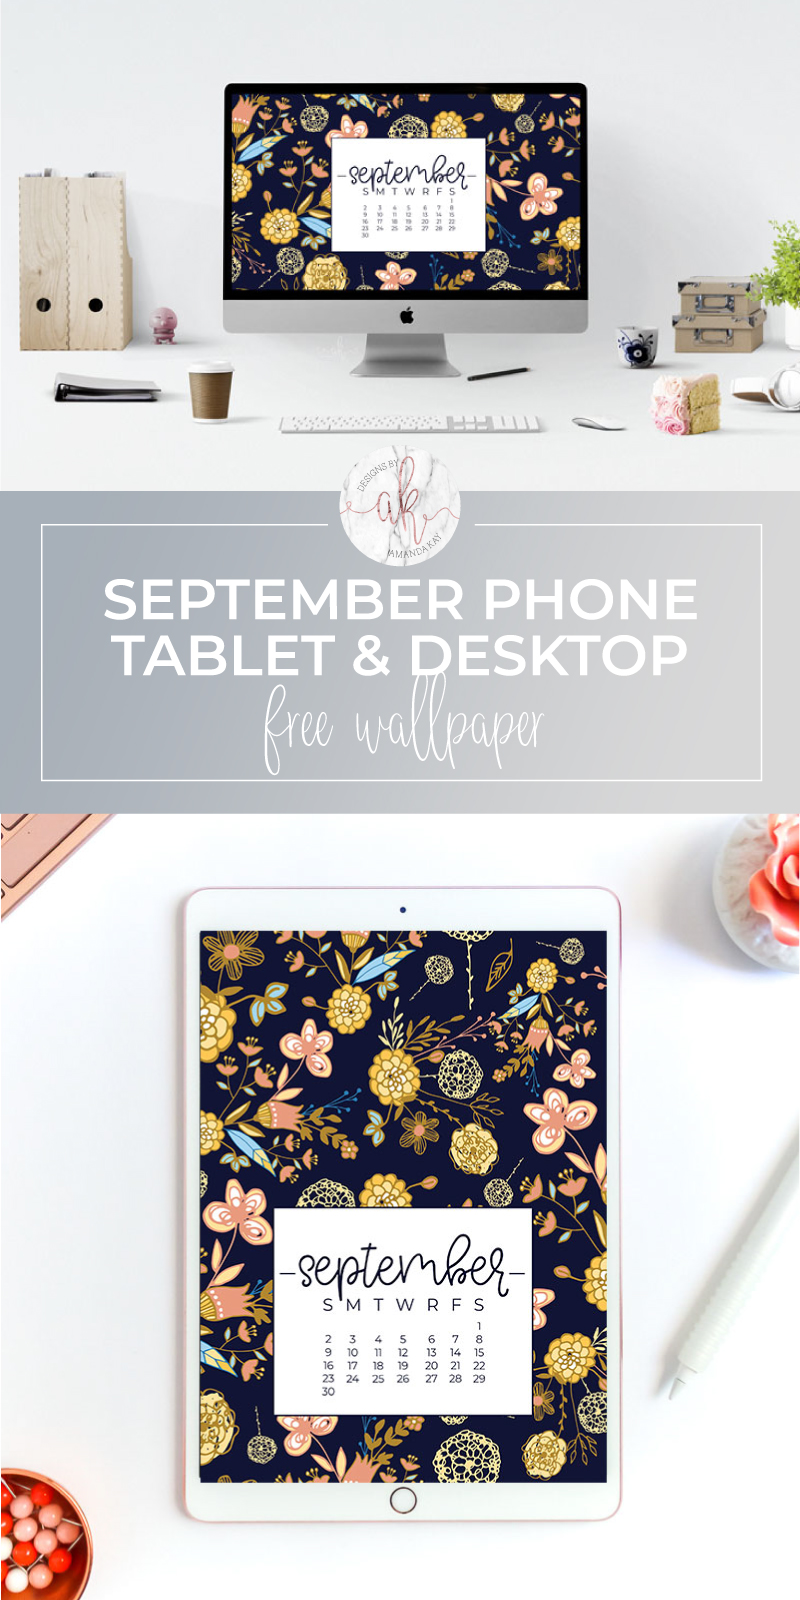 Jazz up your computer, phone or tablet for Fall with these free September 2018 wallpapers! 